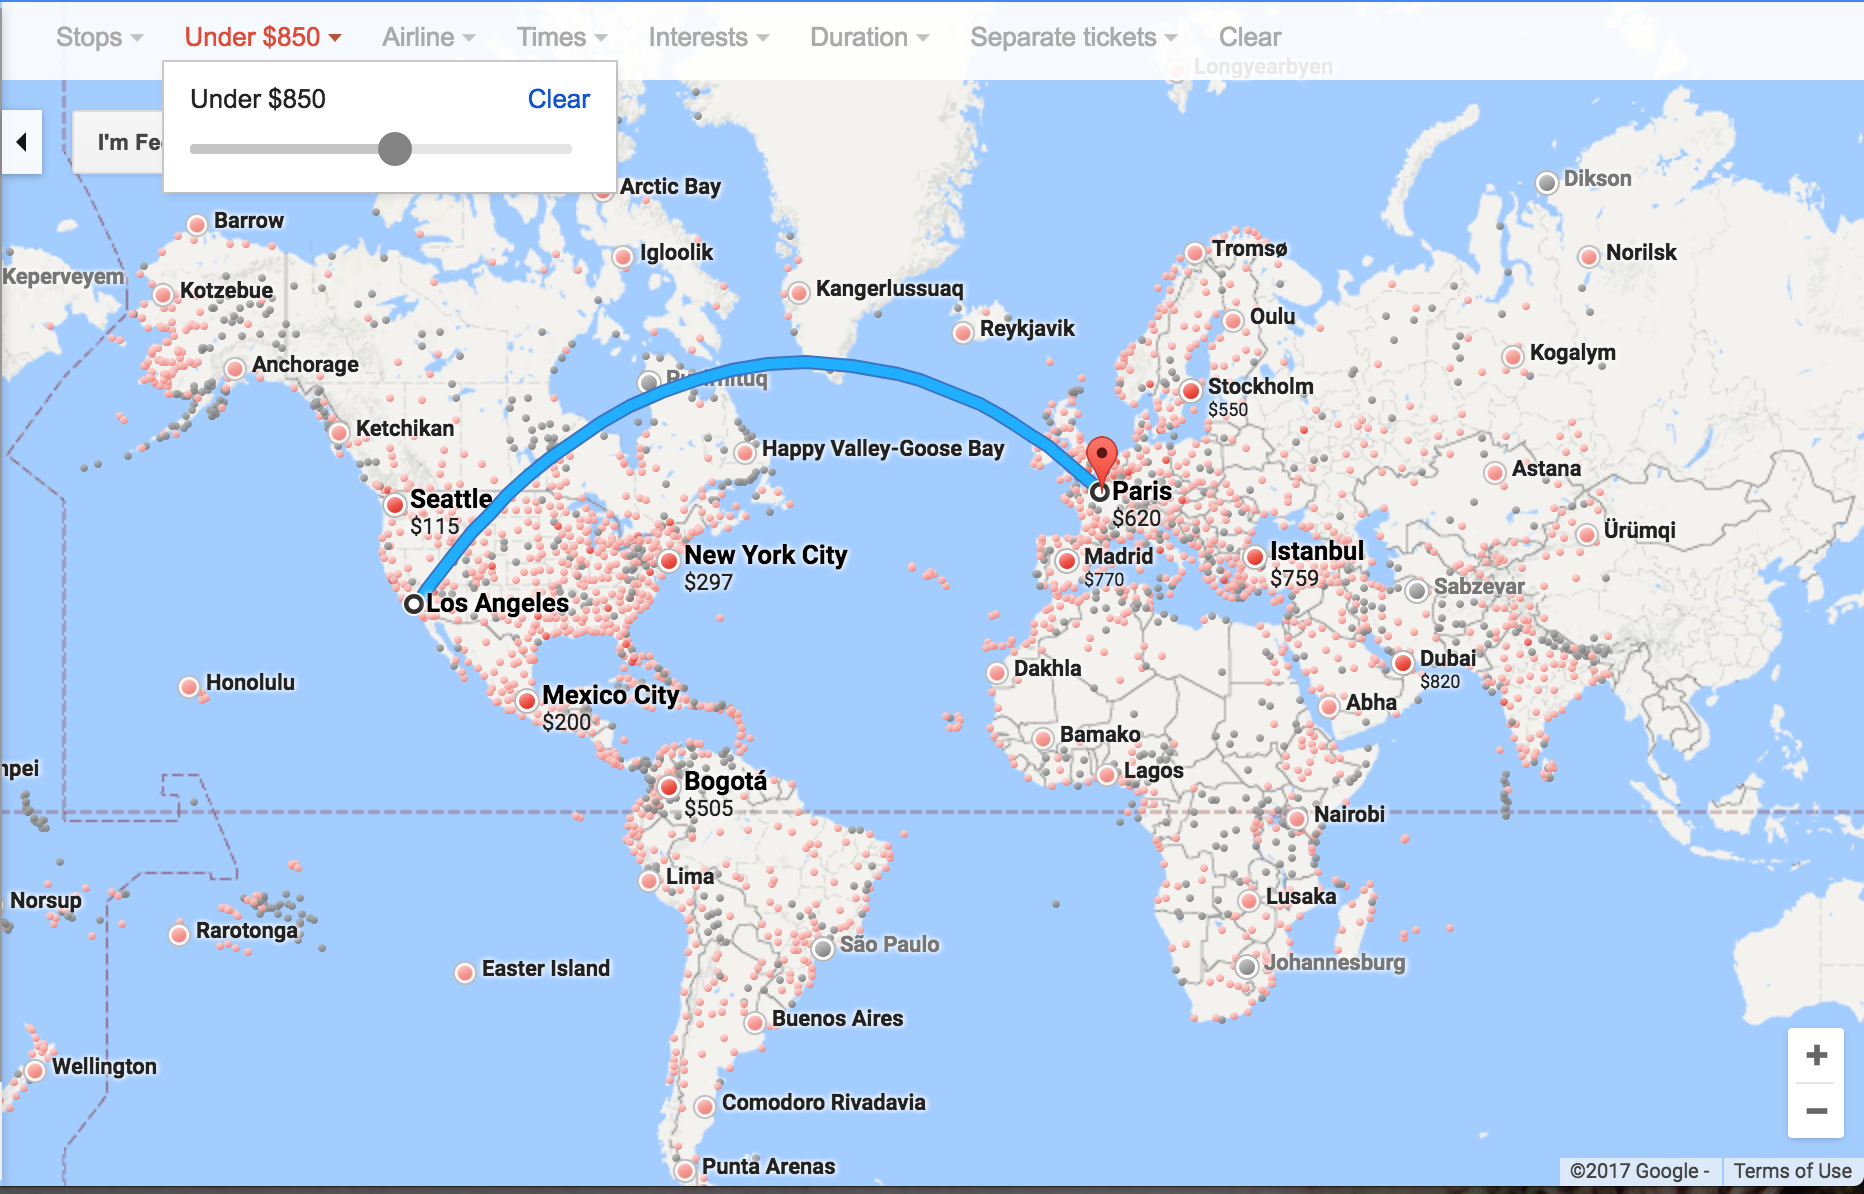 GoogleFlights_Map_PriceLevel